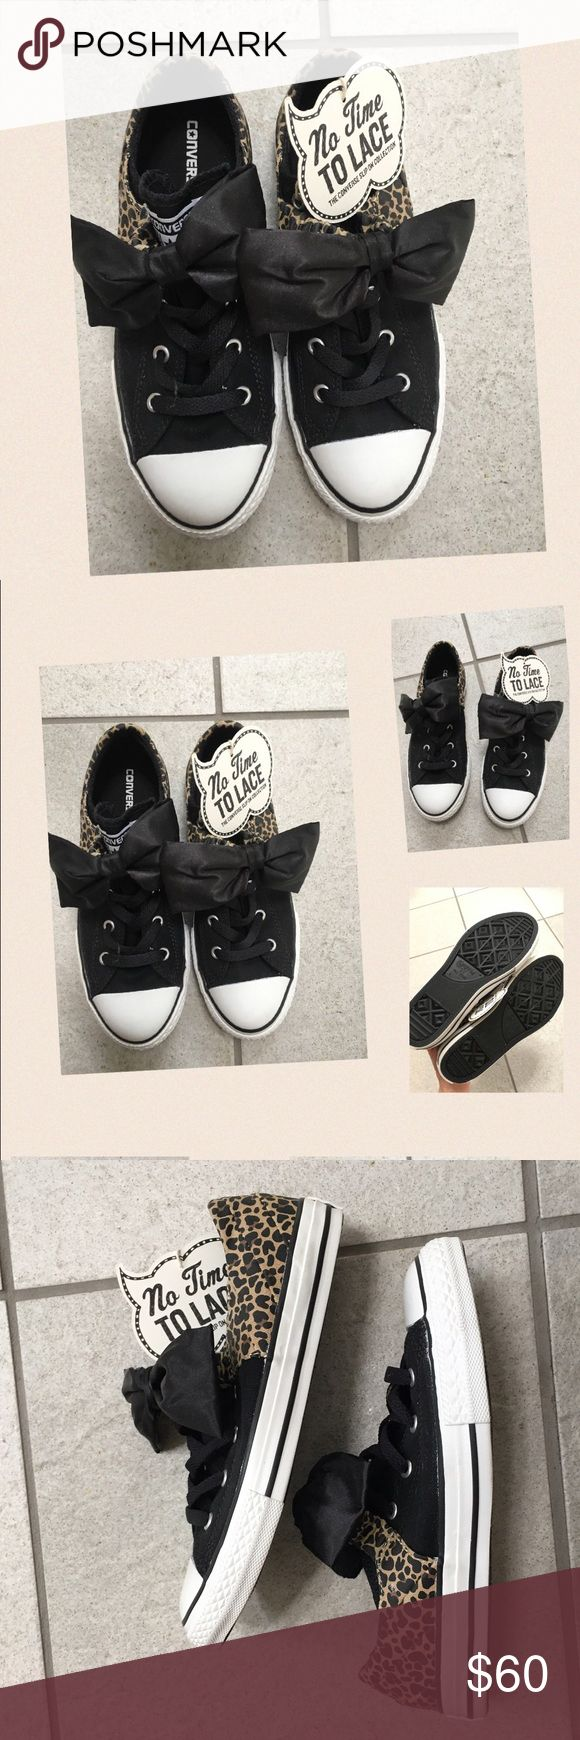 NWT Cheetah print black bow slip on converse shoes NEW converse slip on shoes. Cheetah print/black with black bow on top. No laces:) slips on. Really cute . Size 4 (fits like woman's 5.5-6) Converse Shoes Sneakers